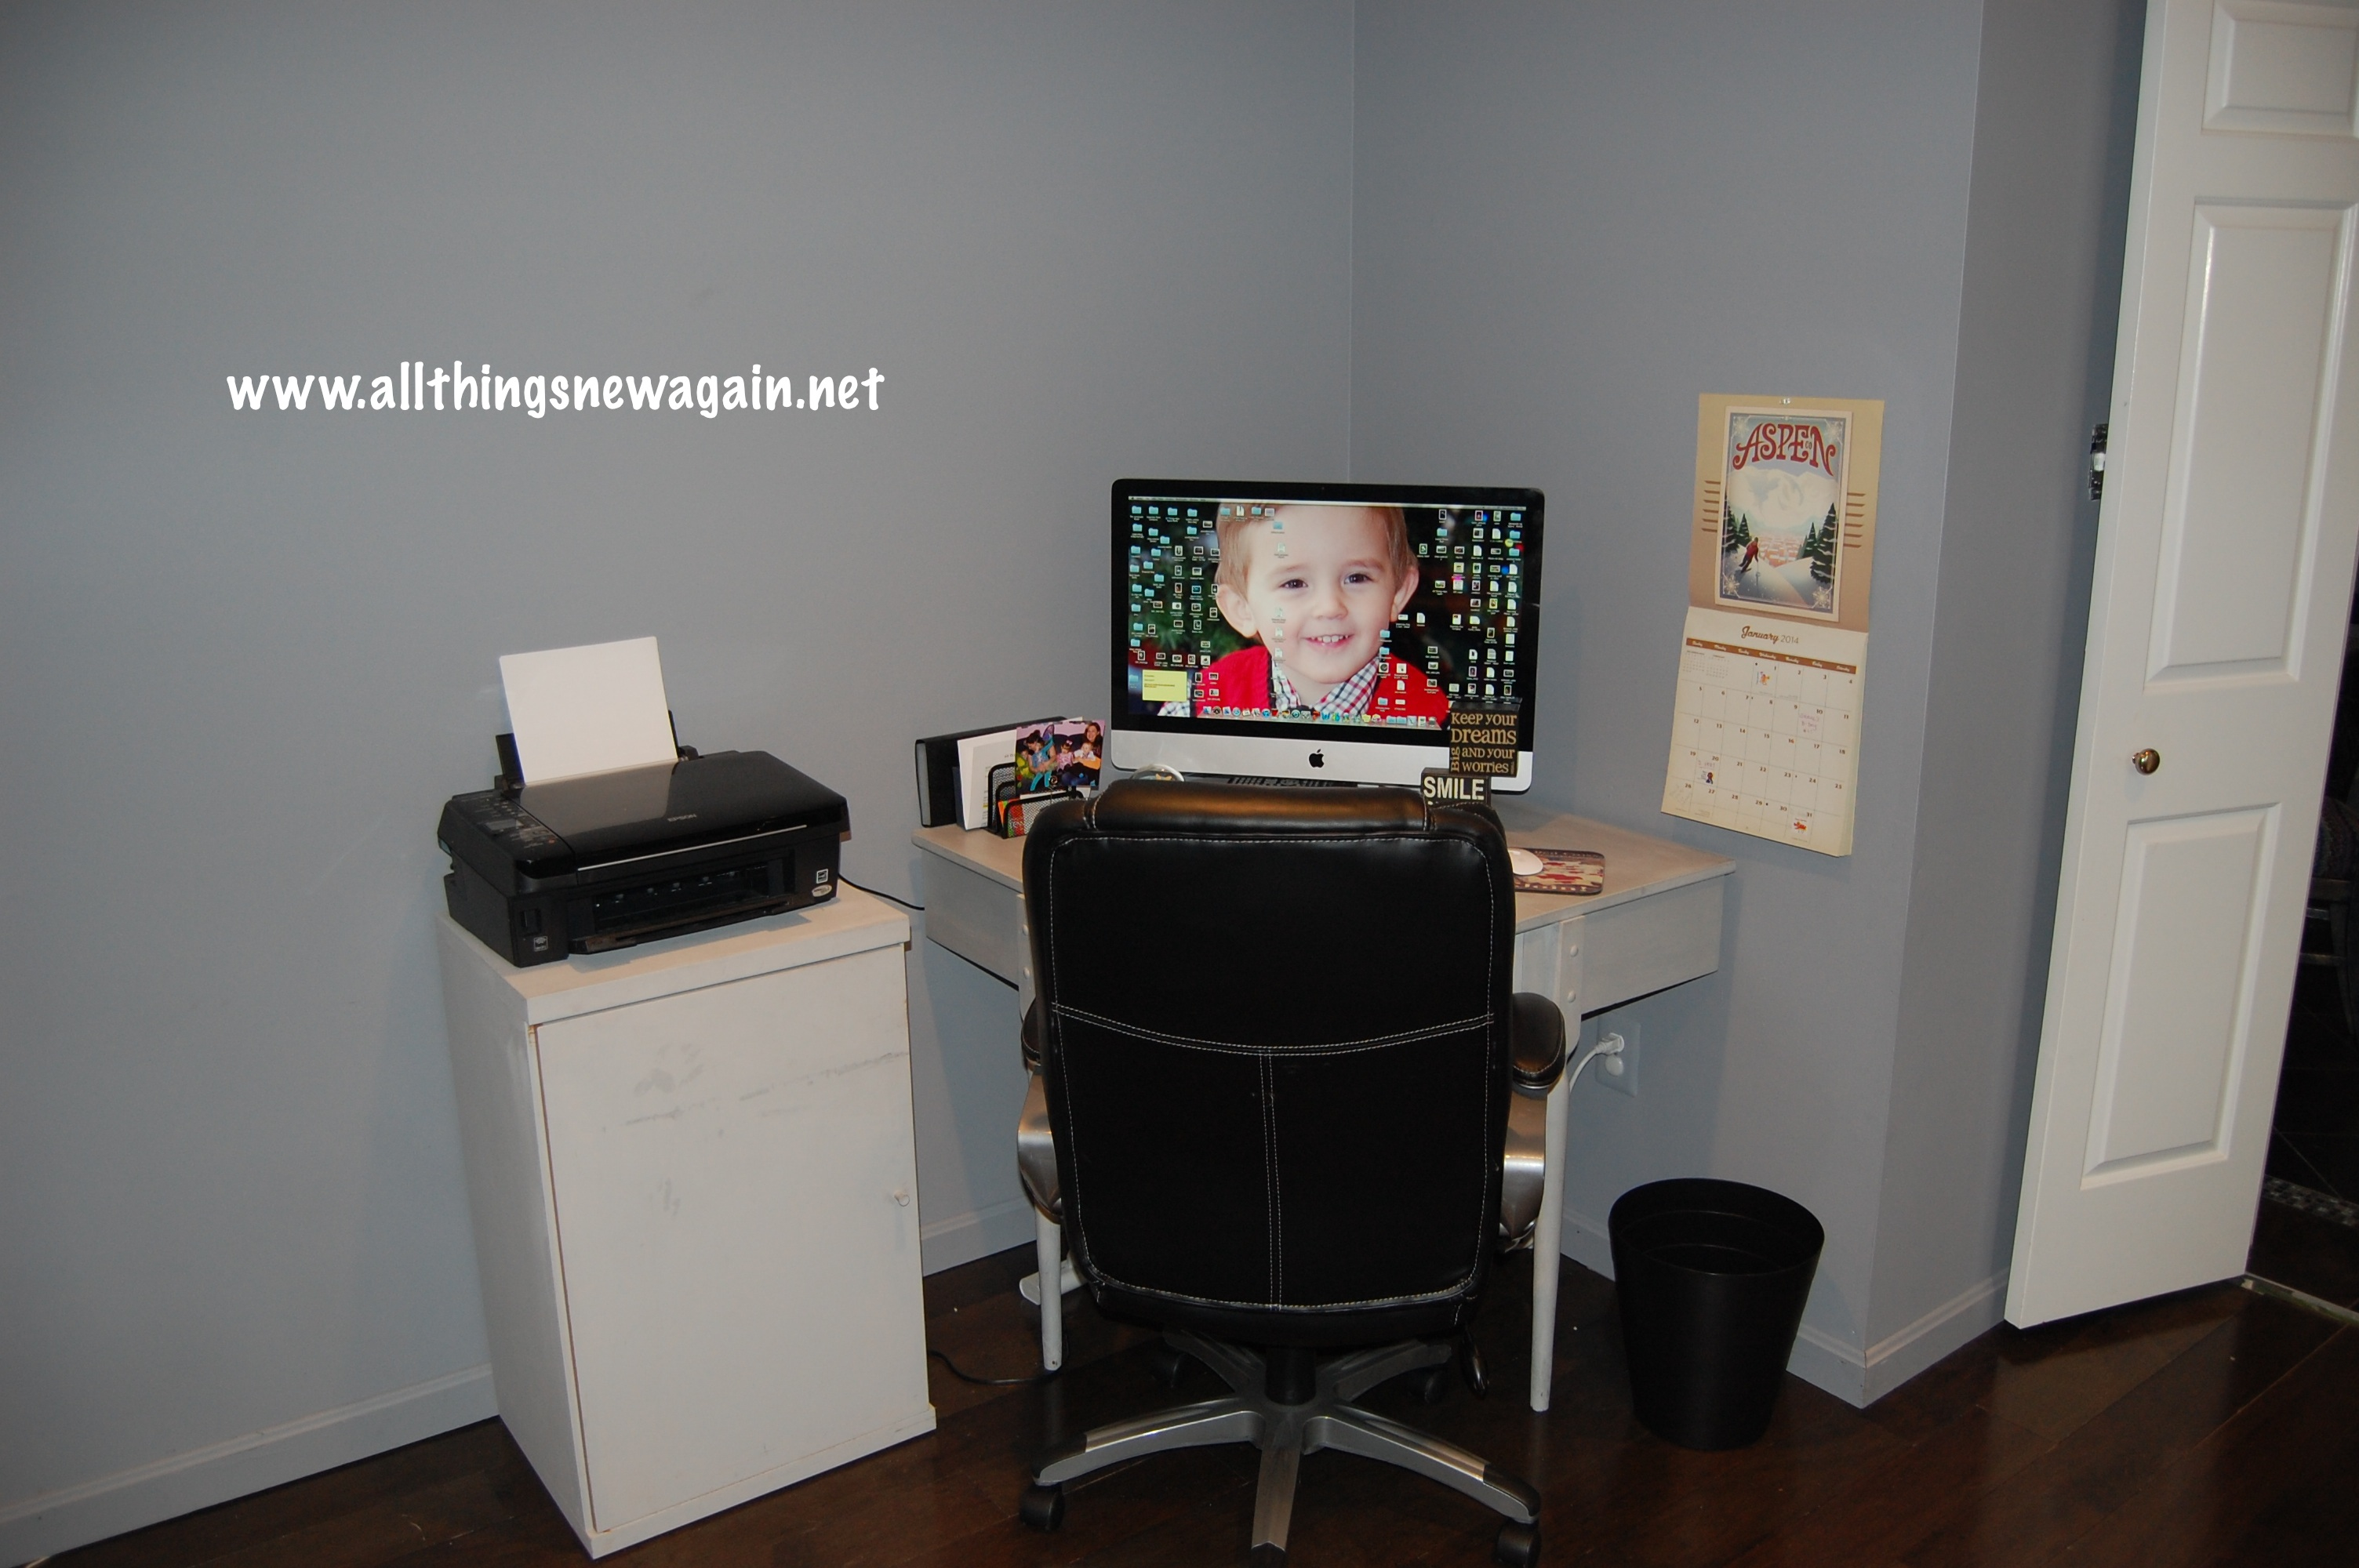 Matching Office Desk Accessories Courtney 39s Office Renovation January 2014 Update All